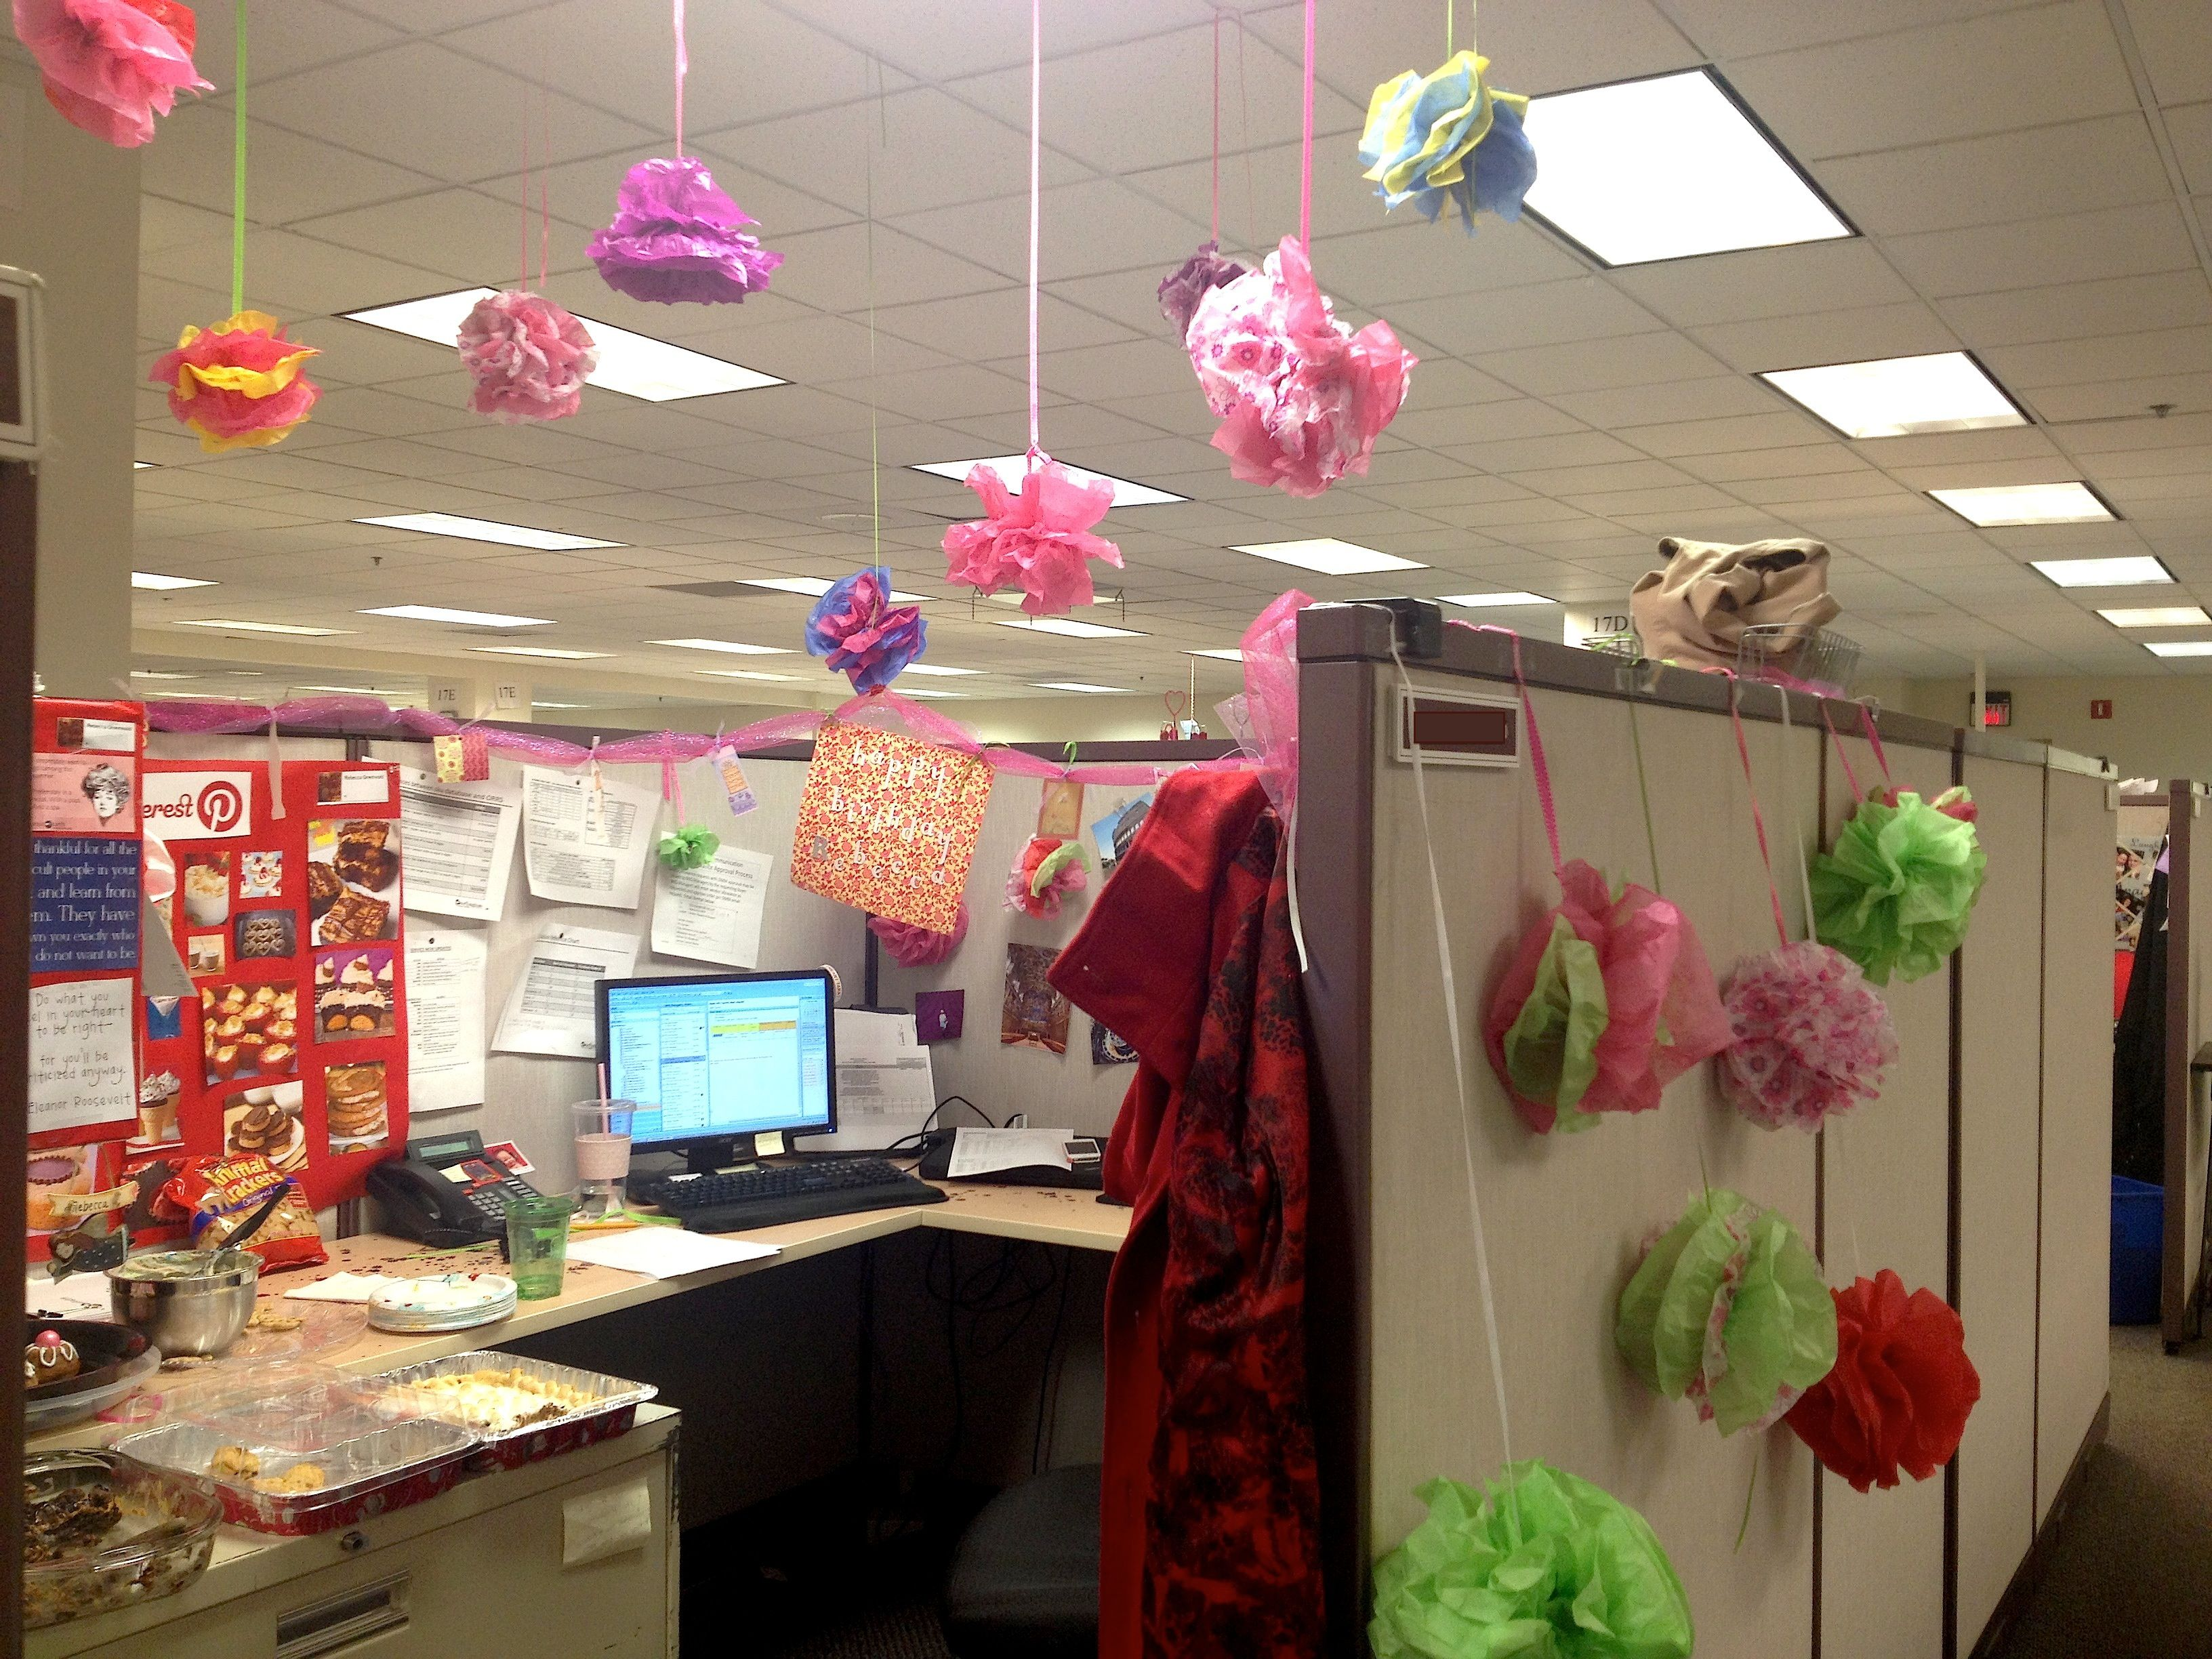 An employees office decorated for their birthday using only ideas